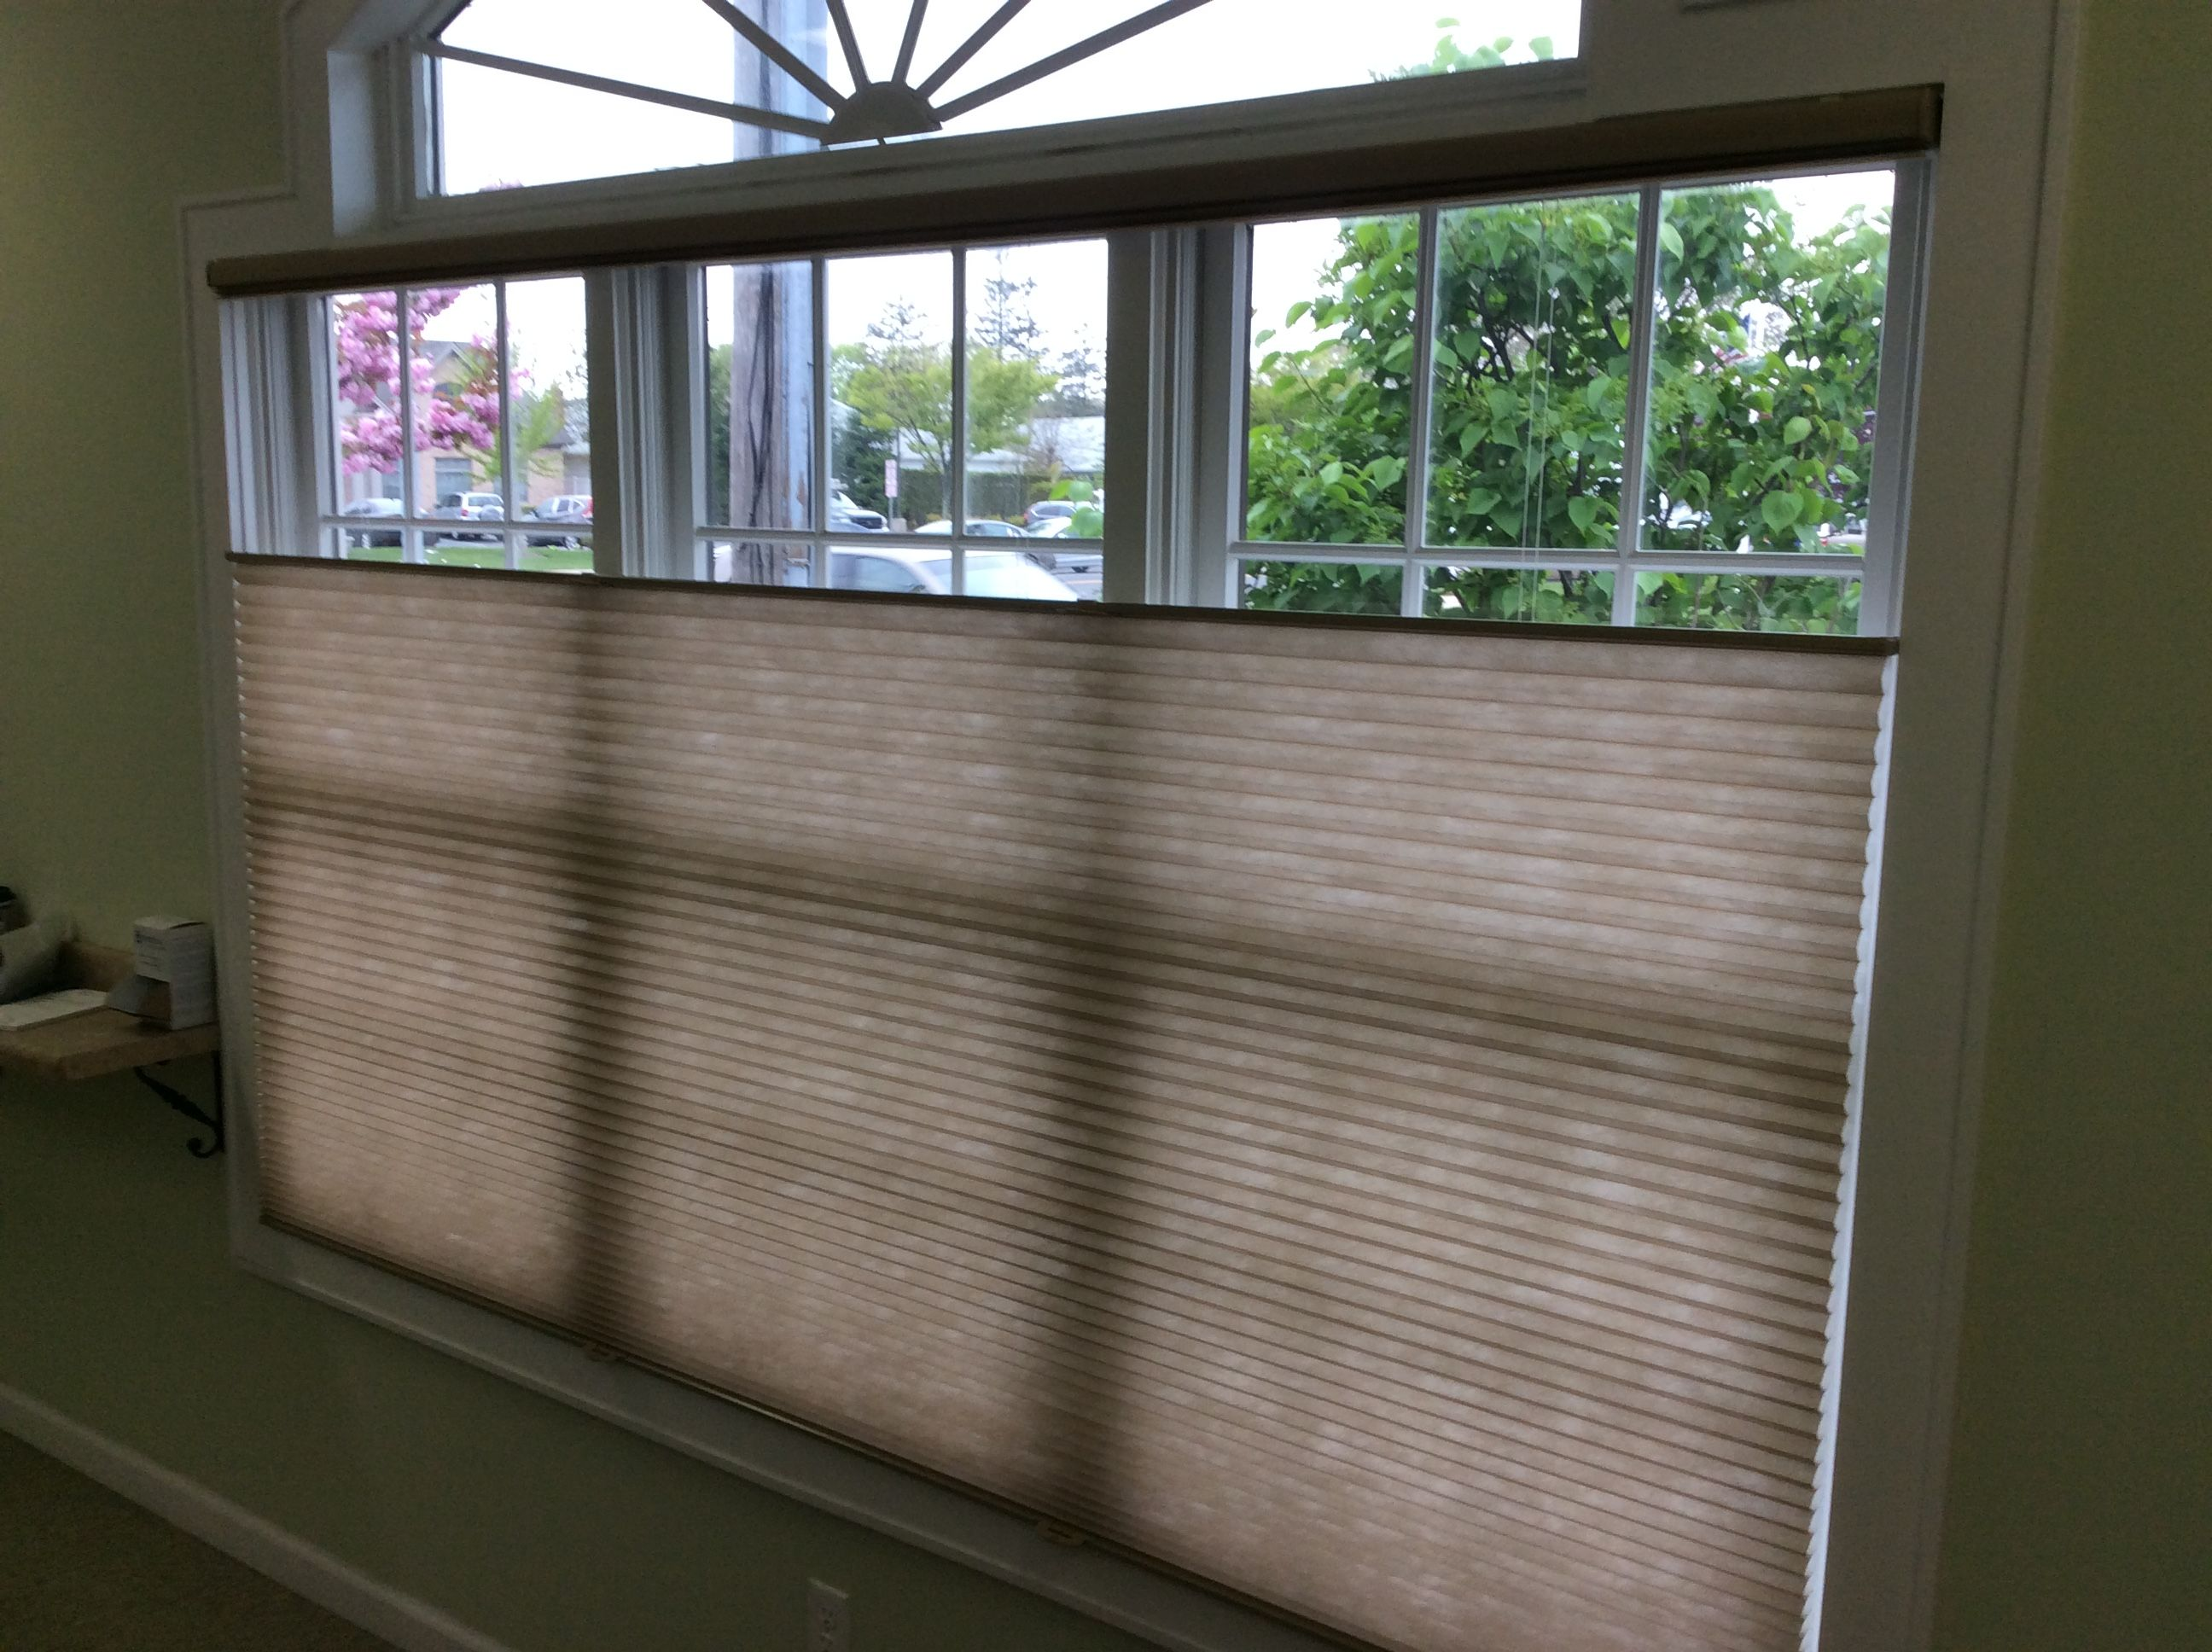 East End Blinds Installed These Hunter Douglas Duette Honeycomb Shades Cellular